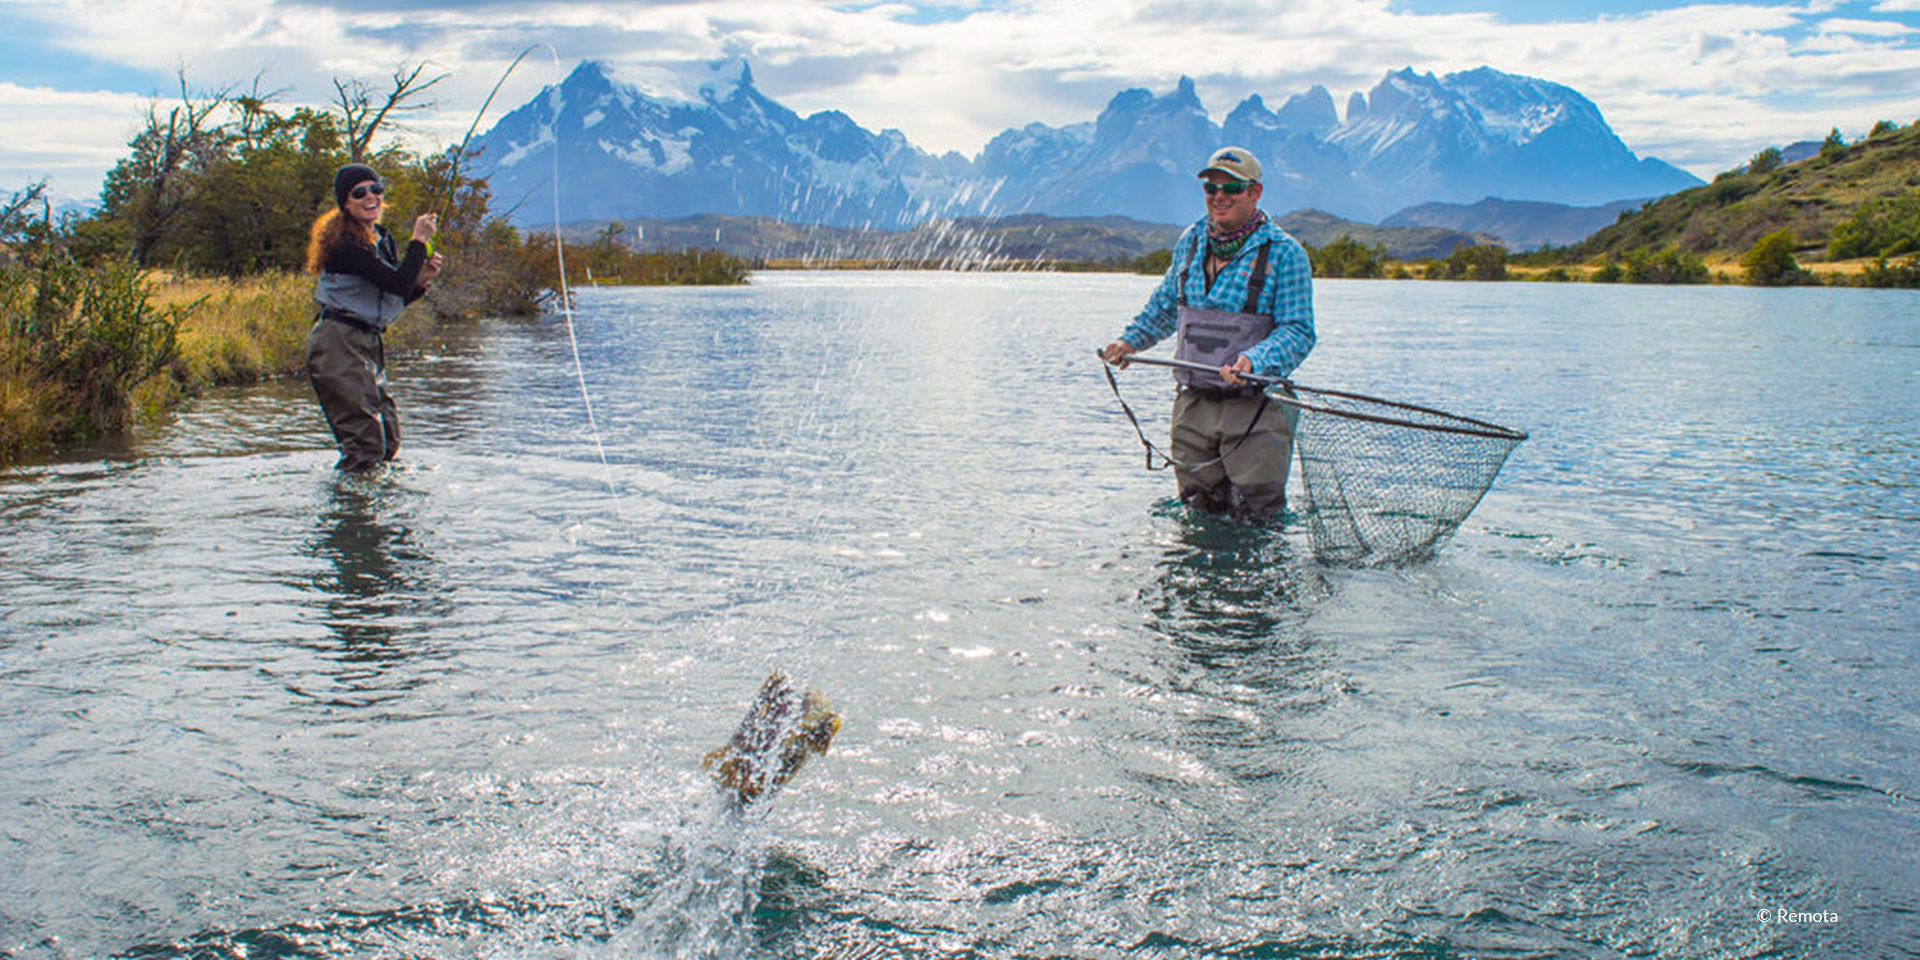 Fly Fishing in Torres del paine, Patagonia